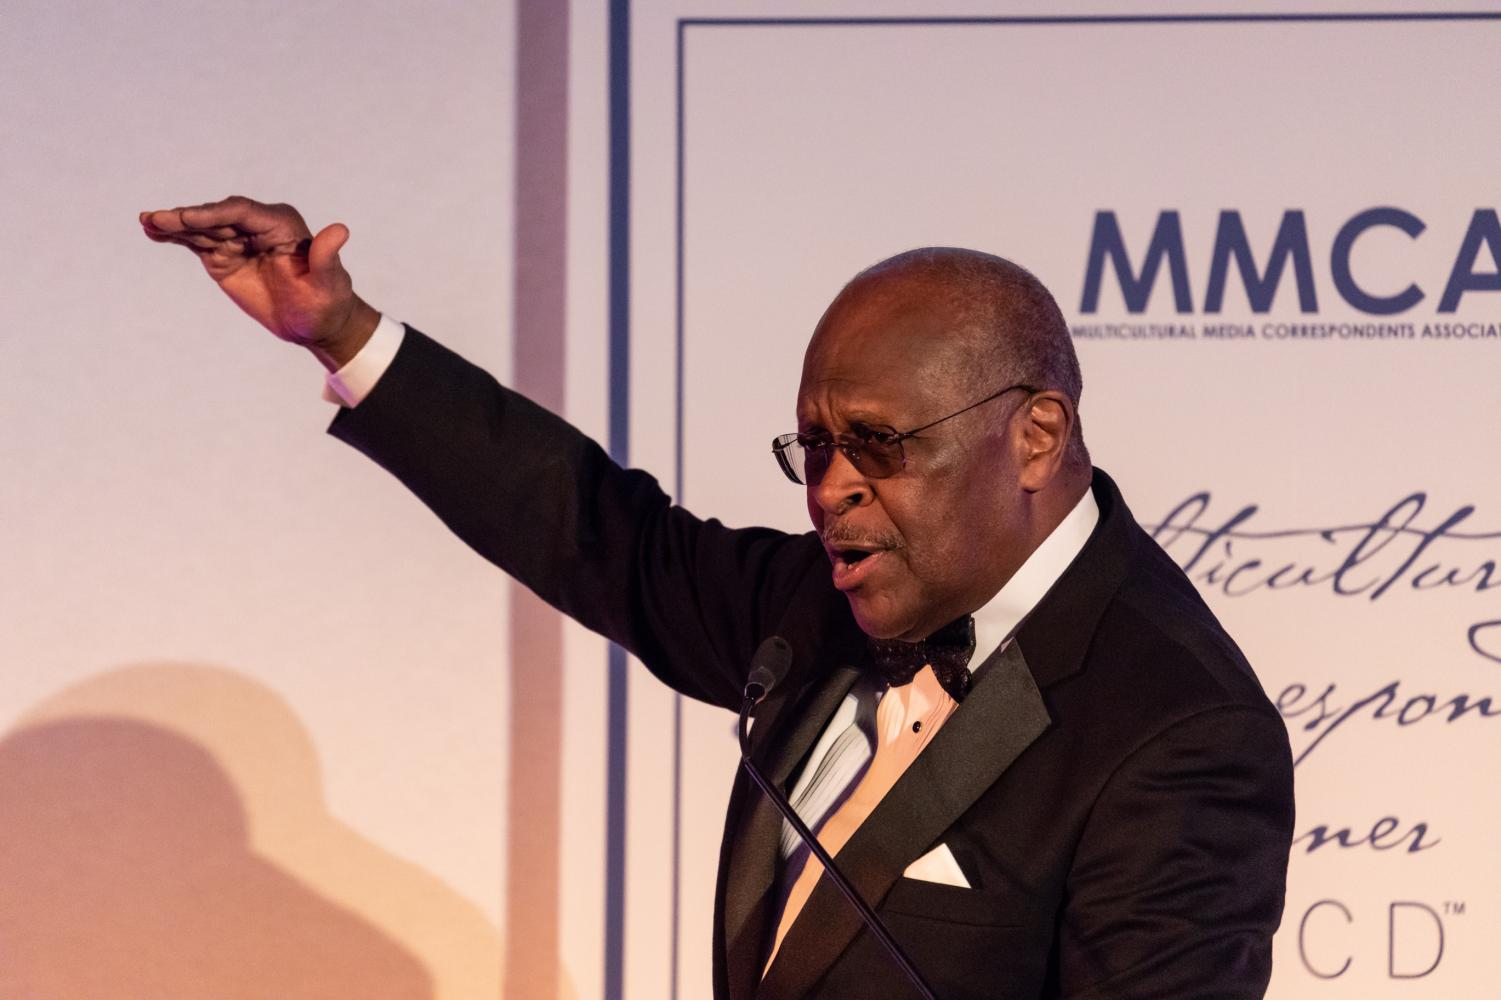 Herman Cain, host of The Herman Cain Show, speaks at the Third Annual Multicultural Media Correspondents Dinner at the National Press Club in Washington, D.C. on Thursday, May 24, 2018. (Photo by Cheriss May/Sipa USA/TNS)